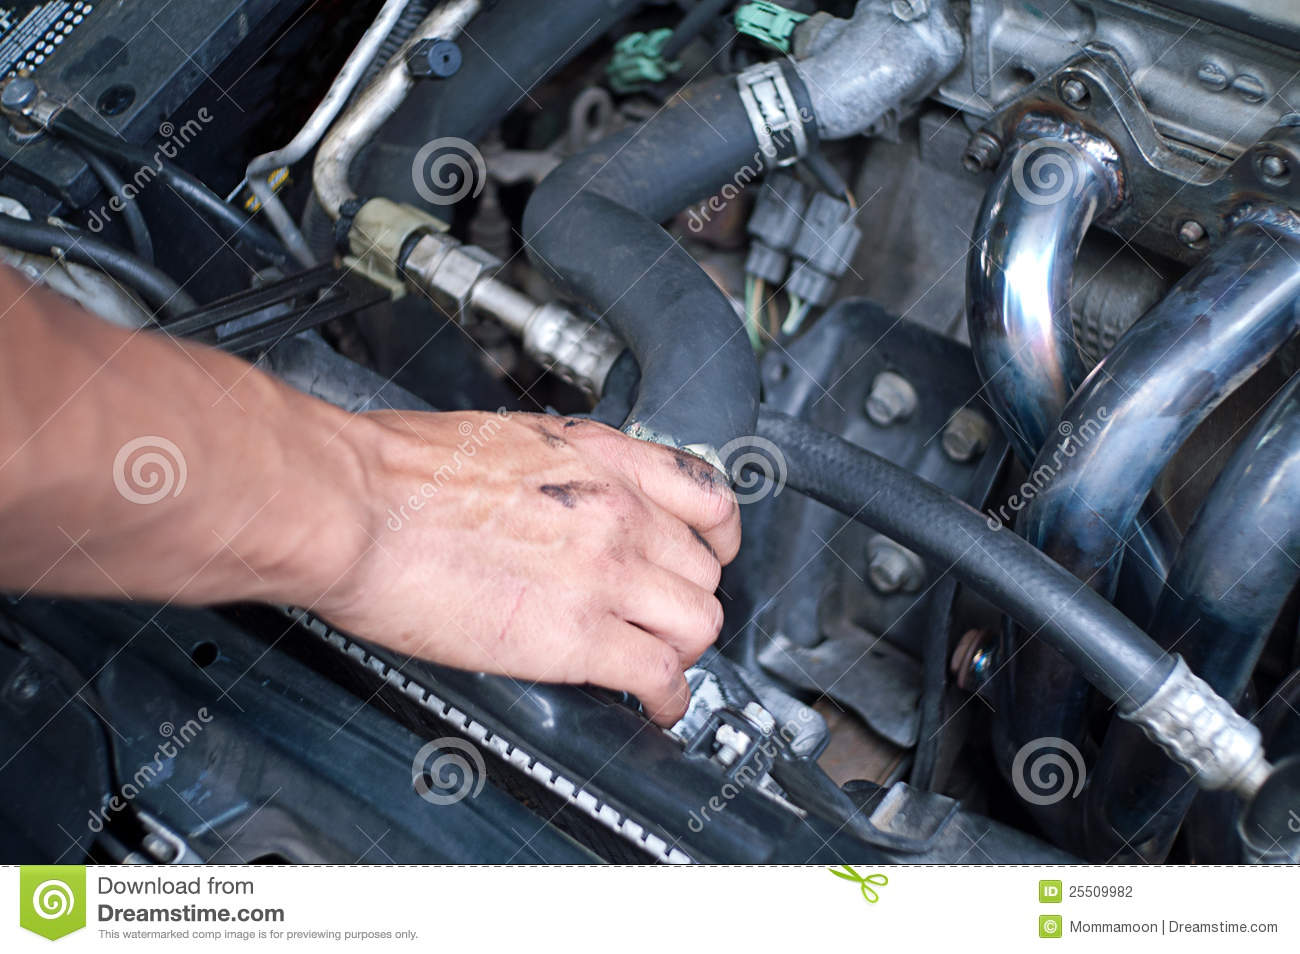 Man S Greese Stained Hand As He Iw Working Under The Hood Of A Car